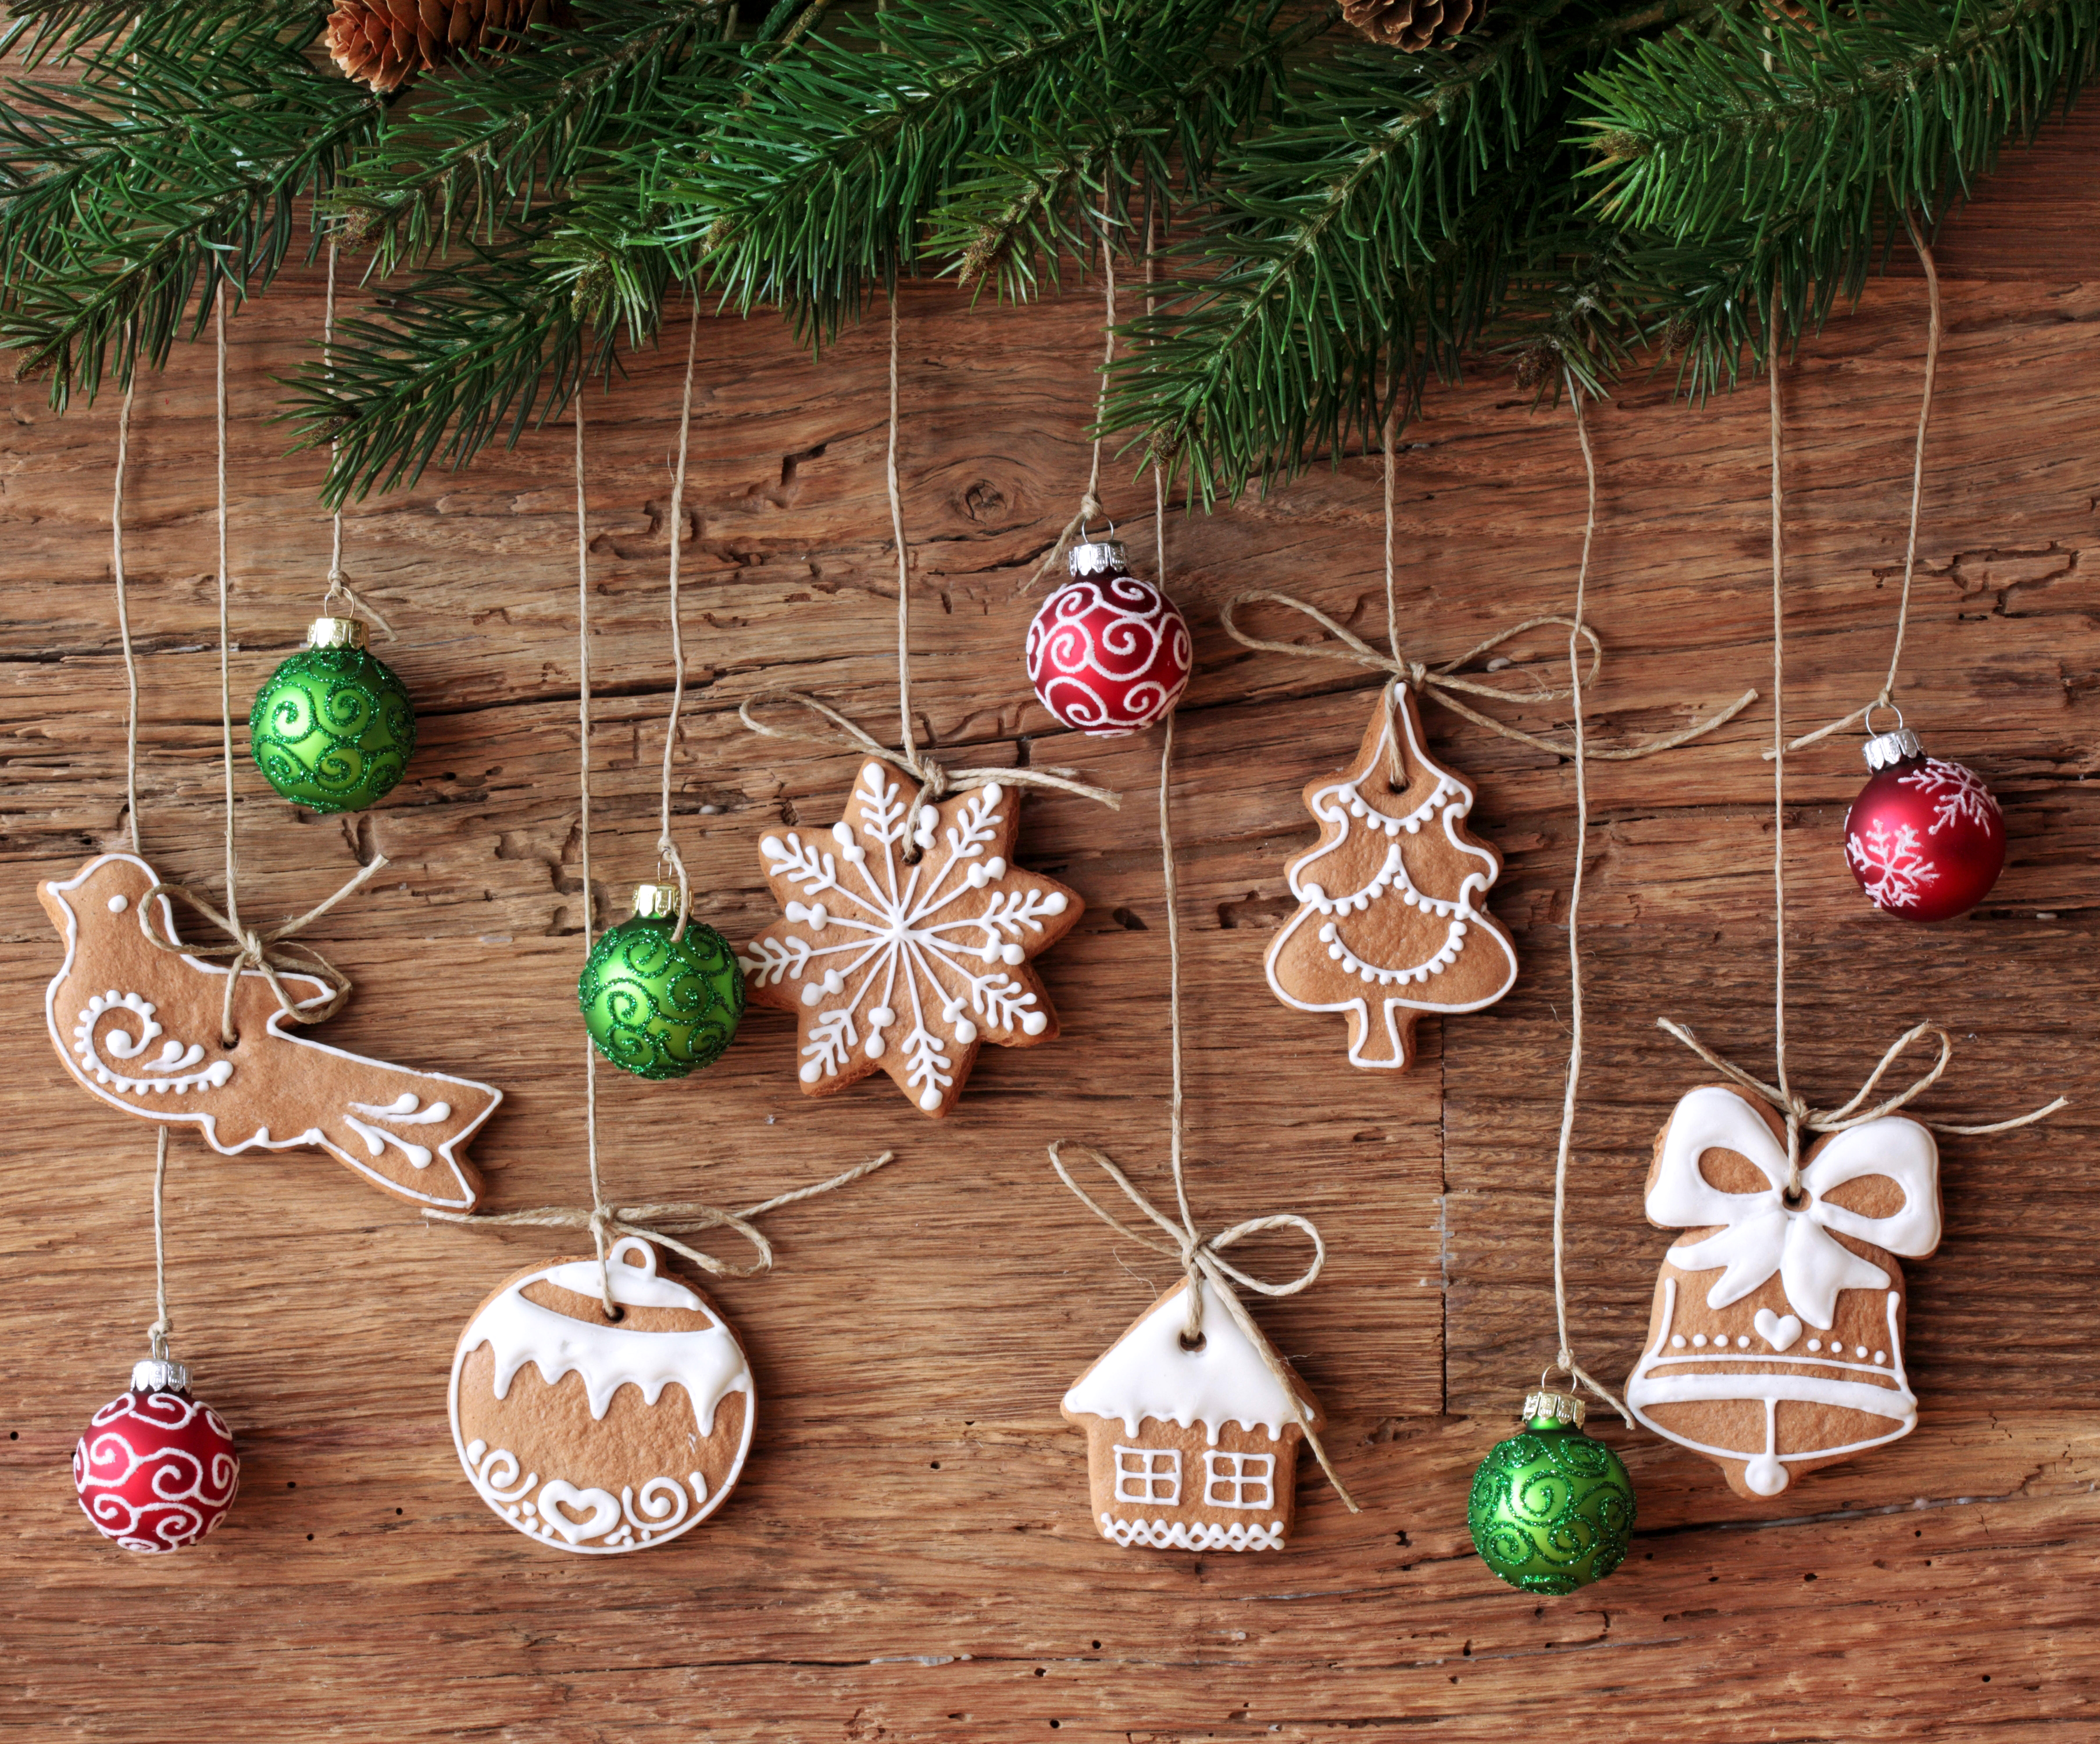 Christmas Cookies Wallpaper.Ornaments And Christmas Cookies 5k Retina Ultra Hd Wallpaper